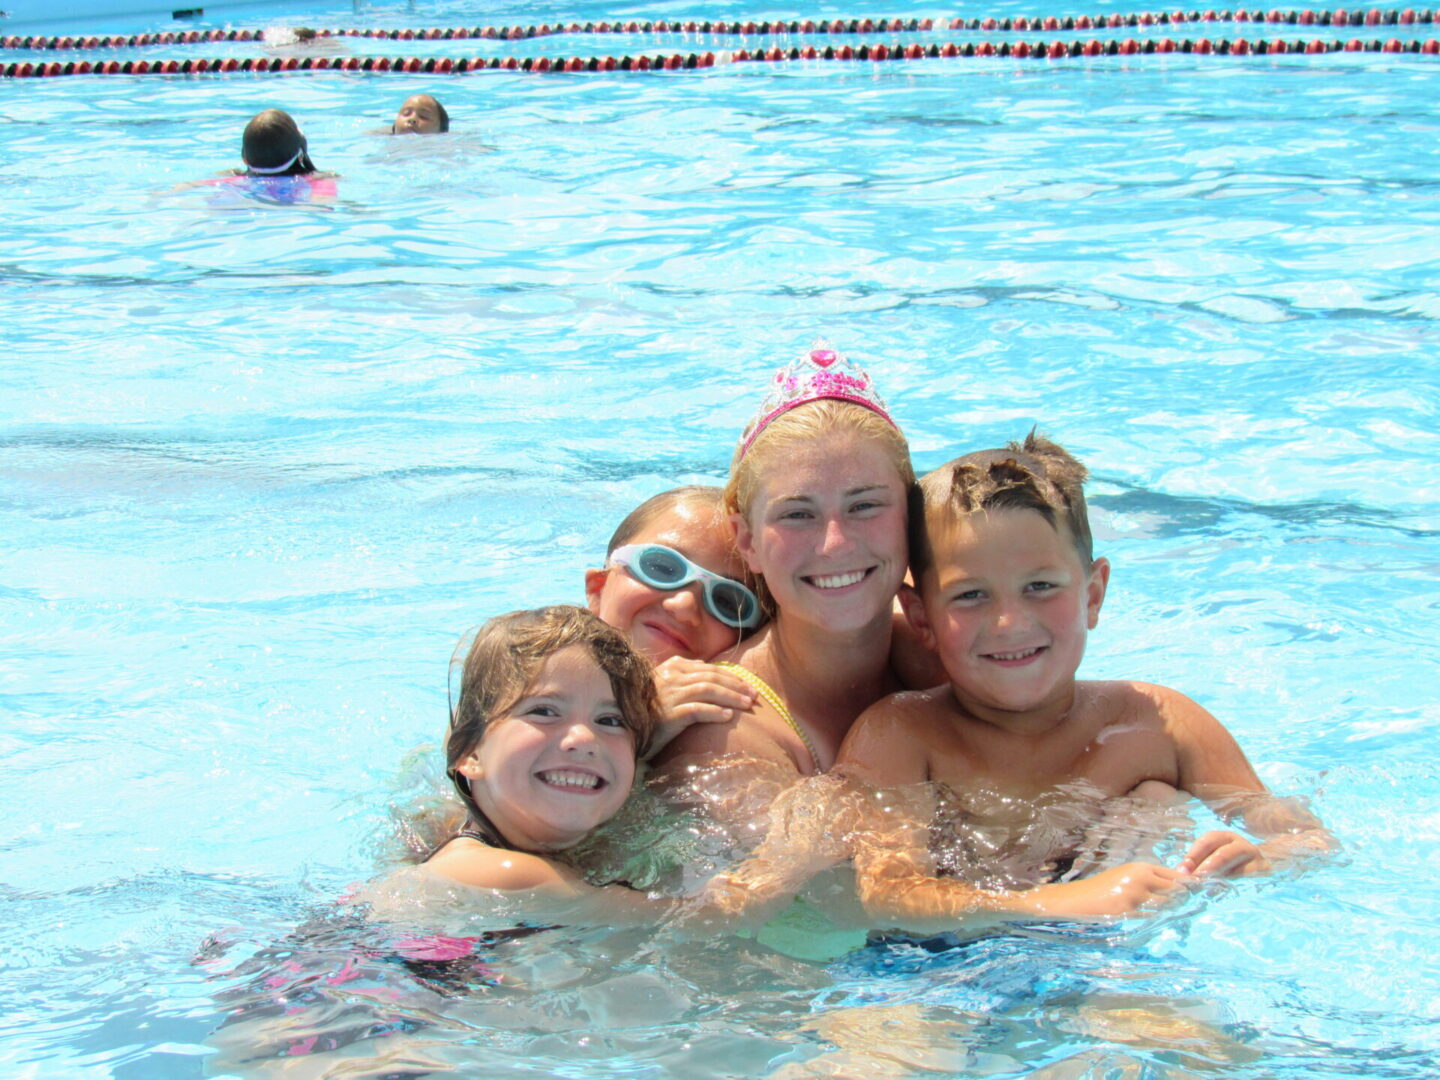 Home Page Mission Ariana with Kids in the Pool